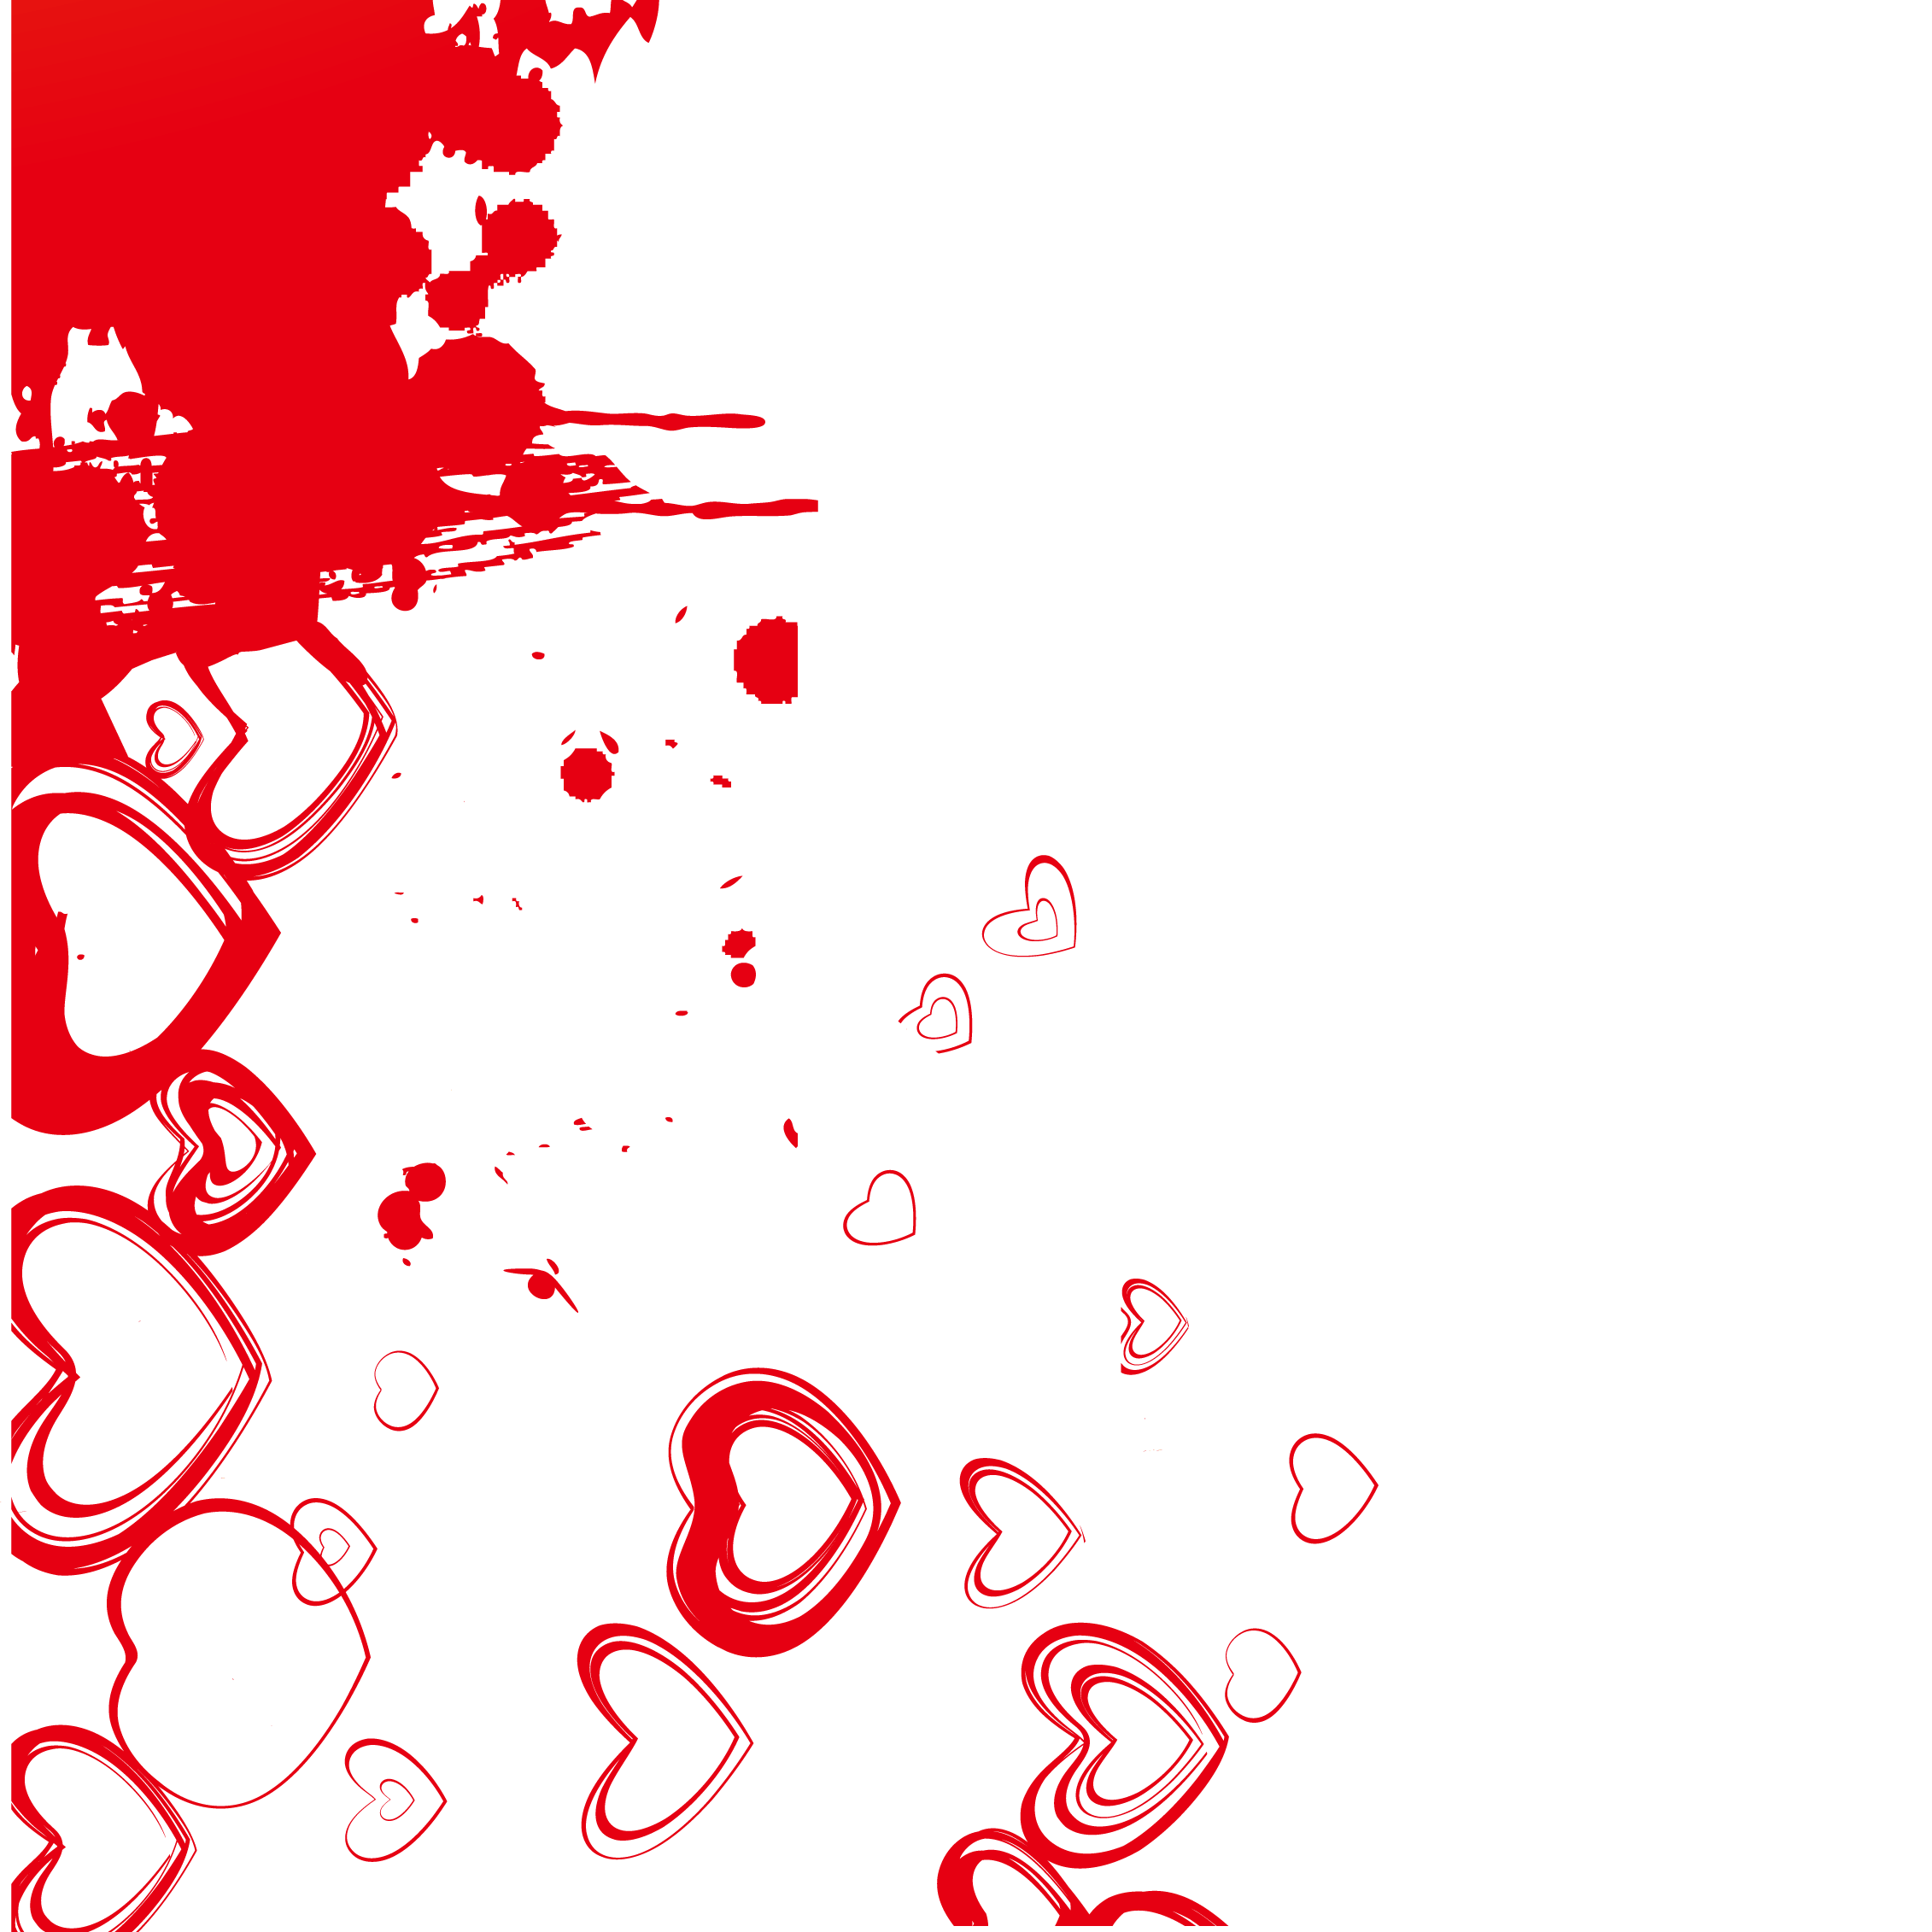 Heart background png. Red ink vector material